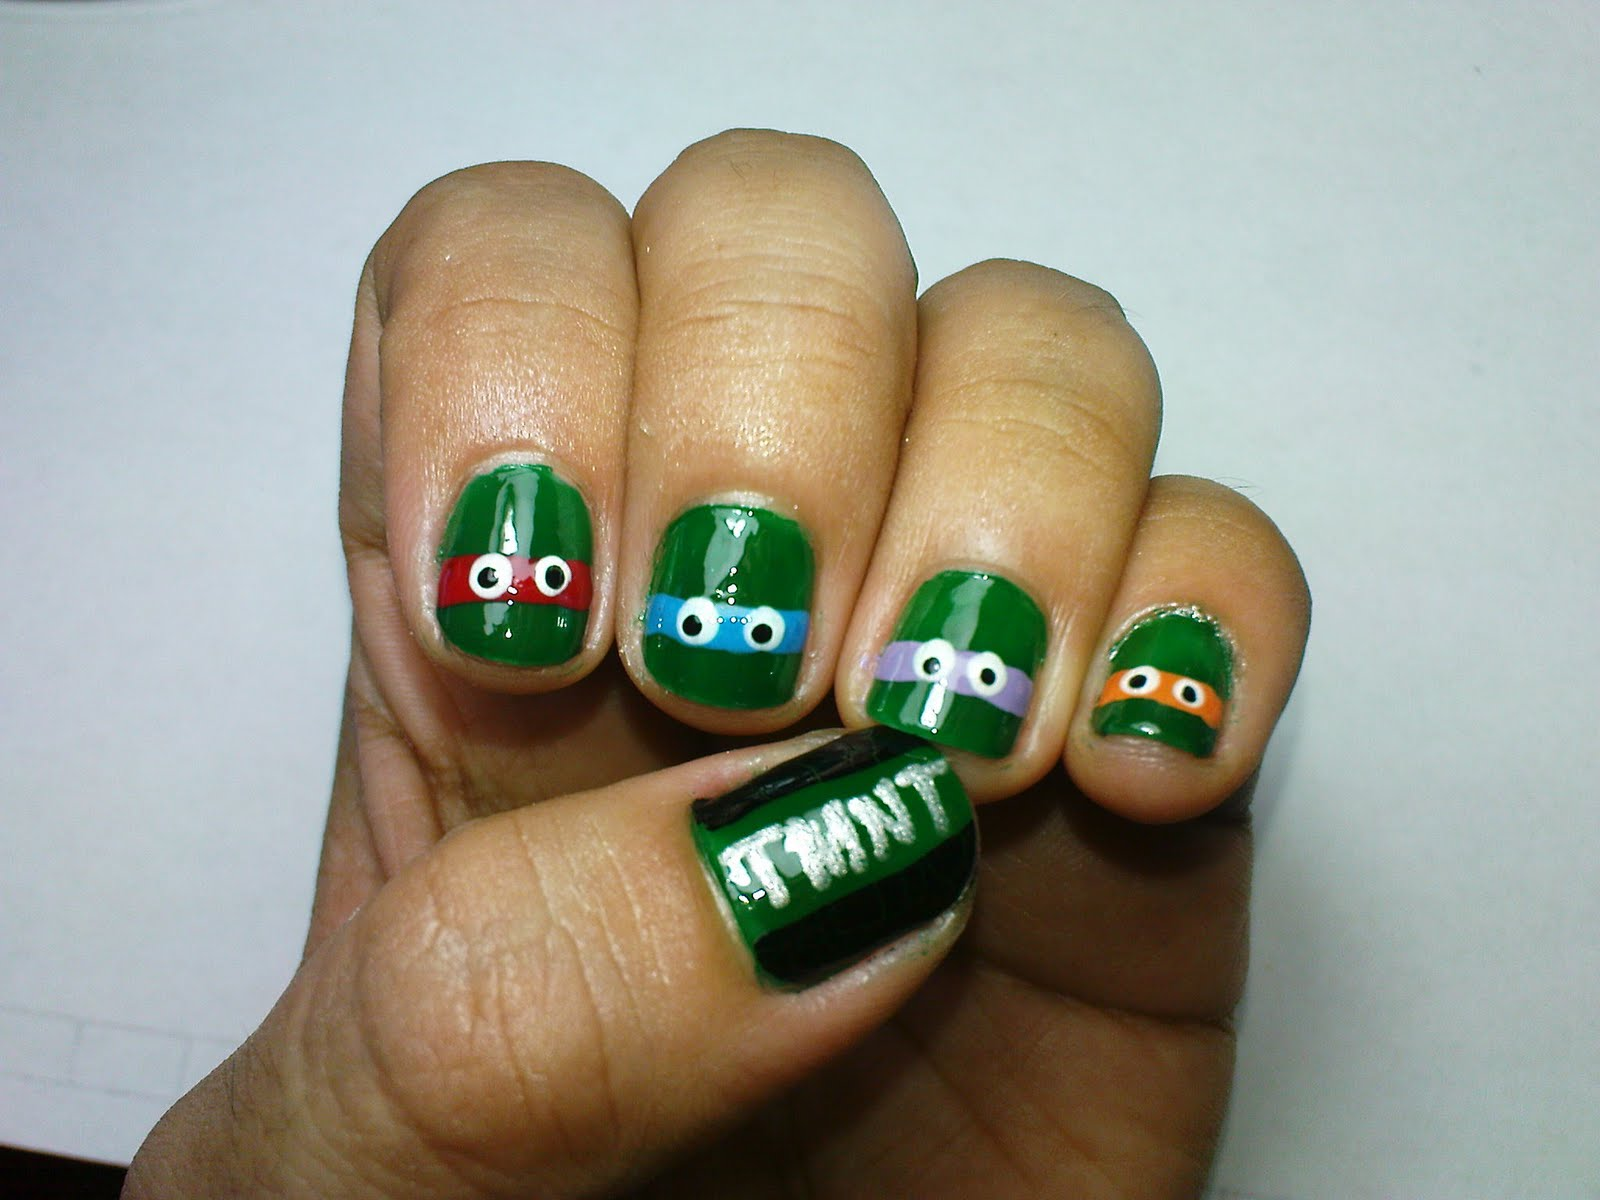 nailart-tutorials: Teenage Mutant Ninja Turtles